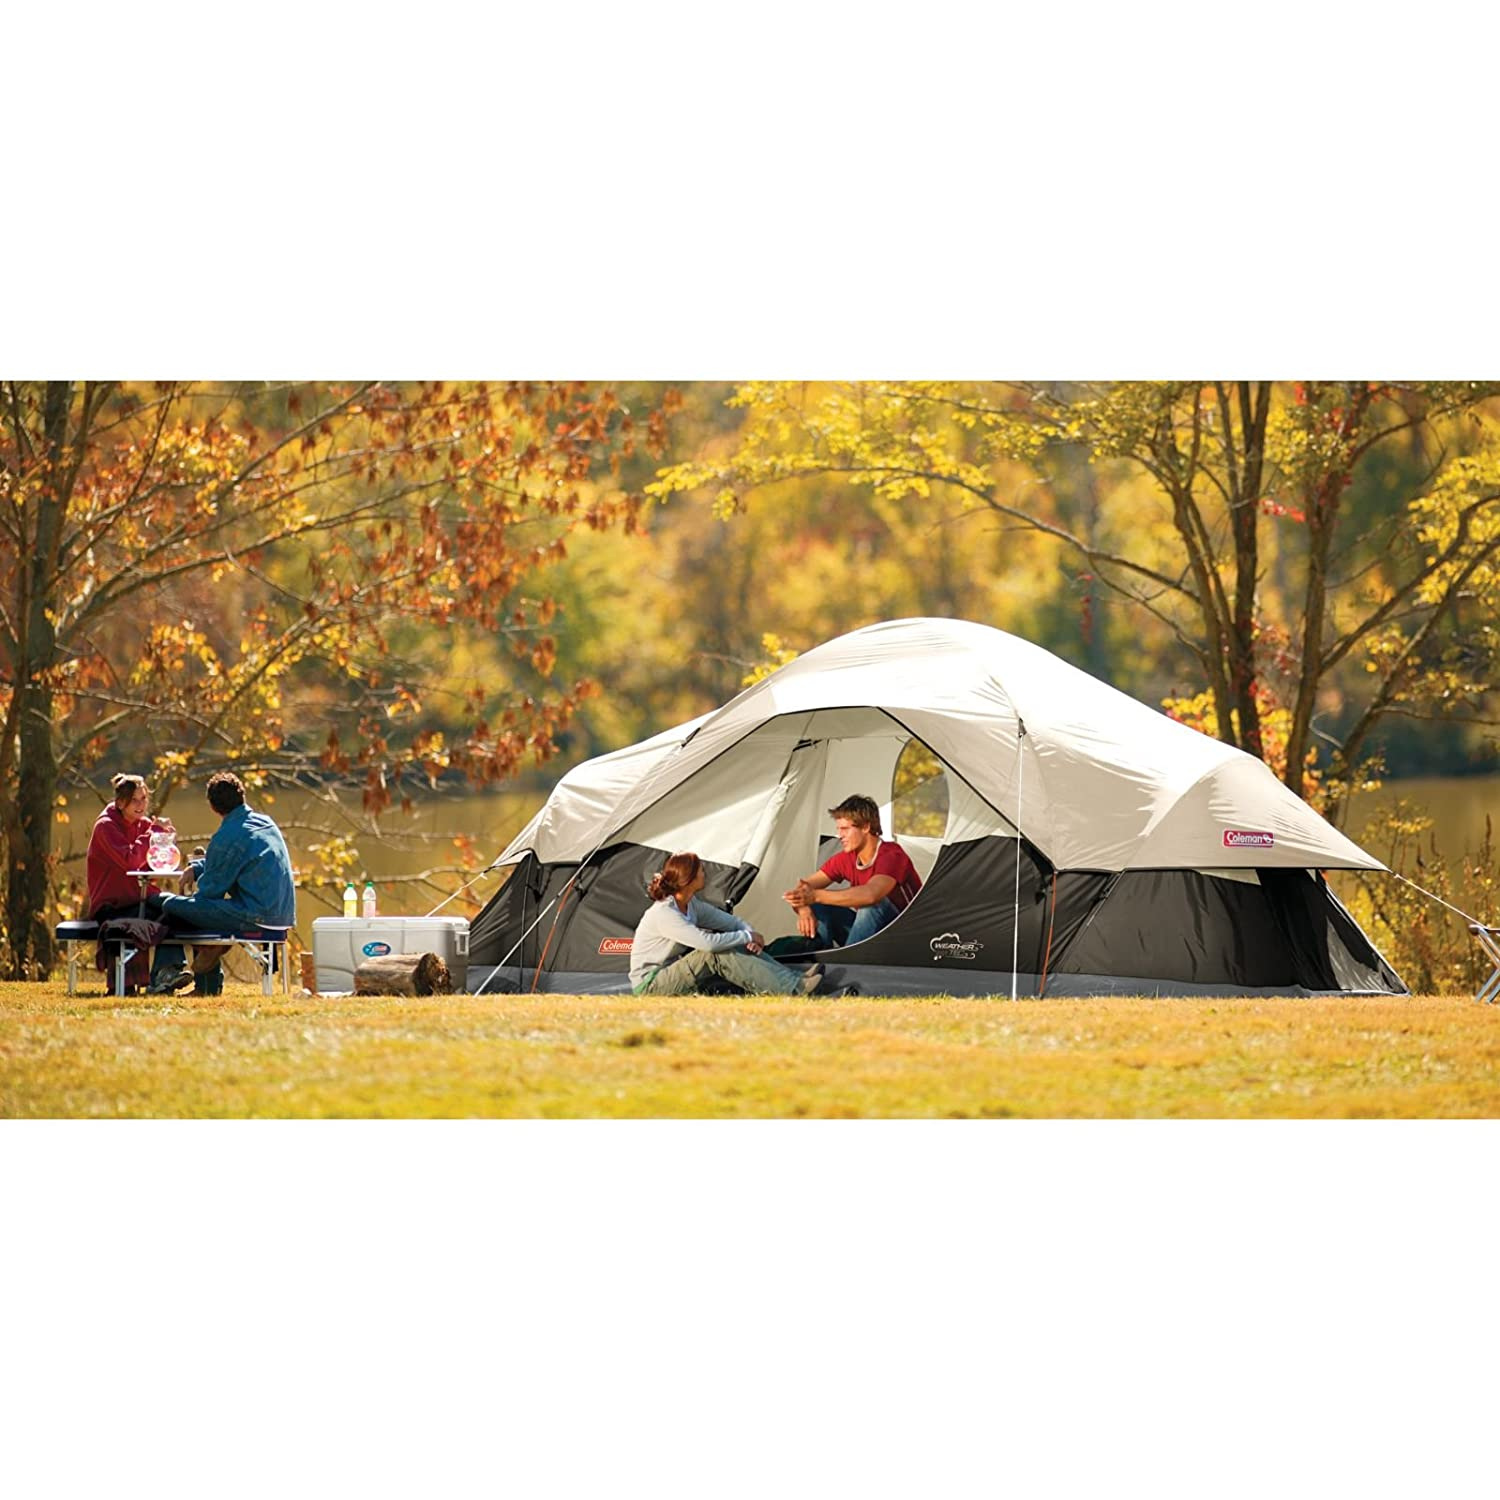 Top 5 C&ing Tent for Family Reviews  sc 1 st  Outdoor Tricks & Best Cabin Tents for Family in 2018 u2013 Outdoor Tricks